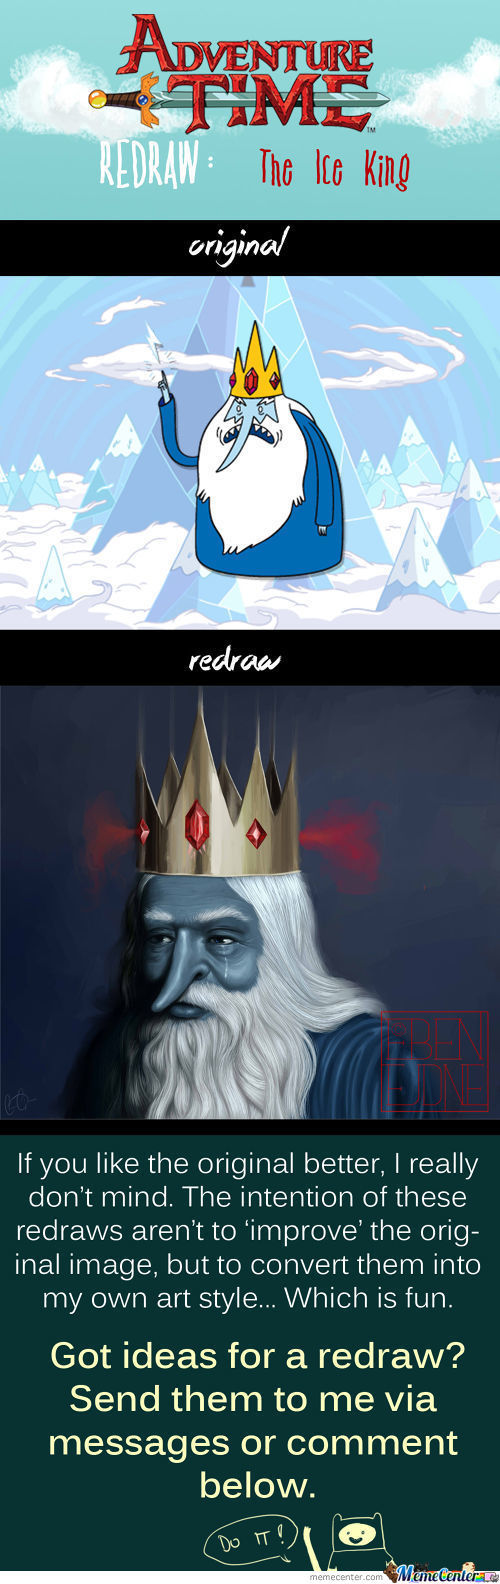 Redraw: The Ice King